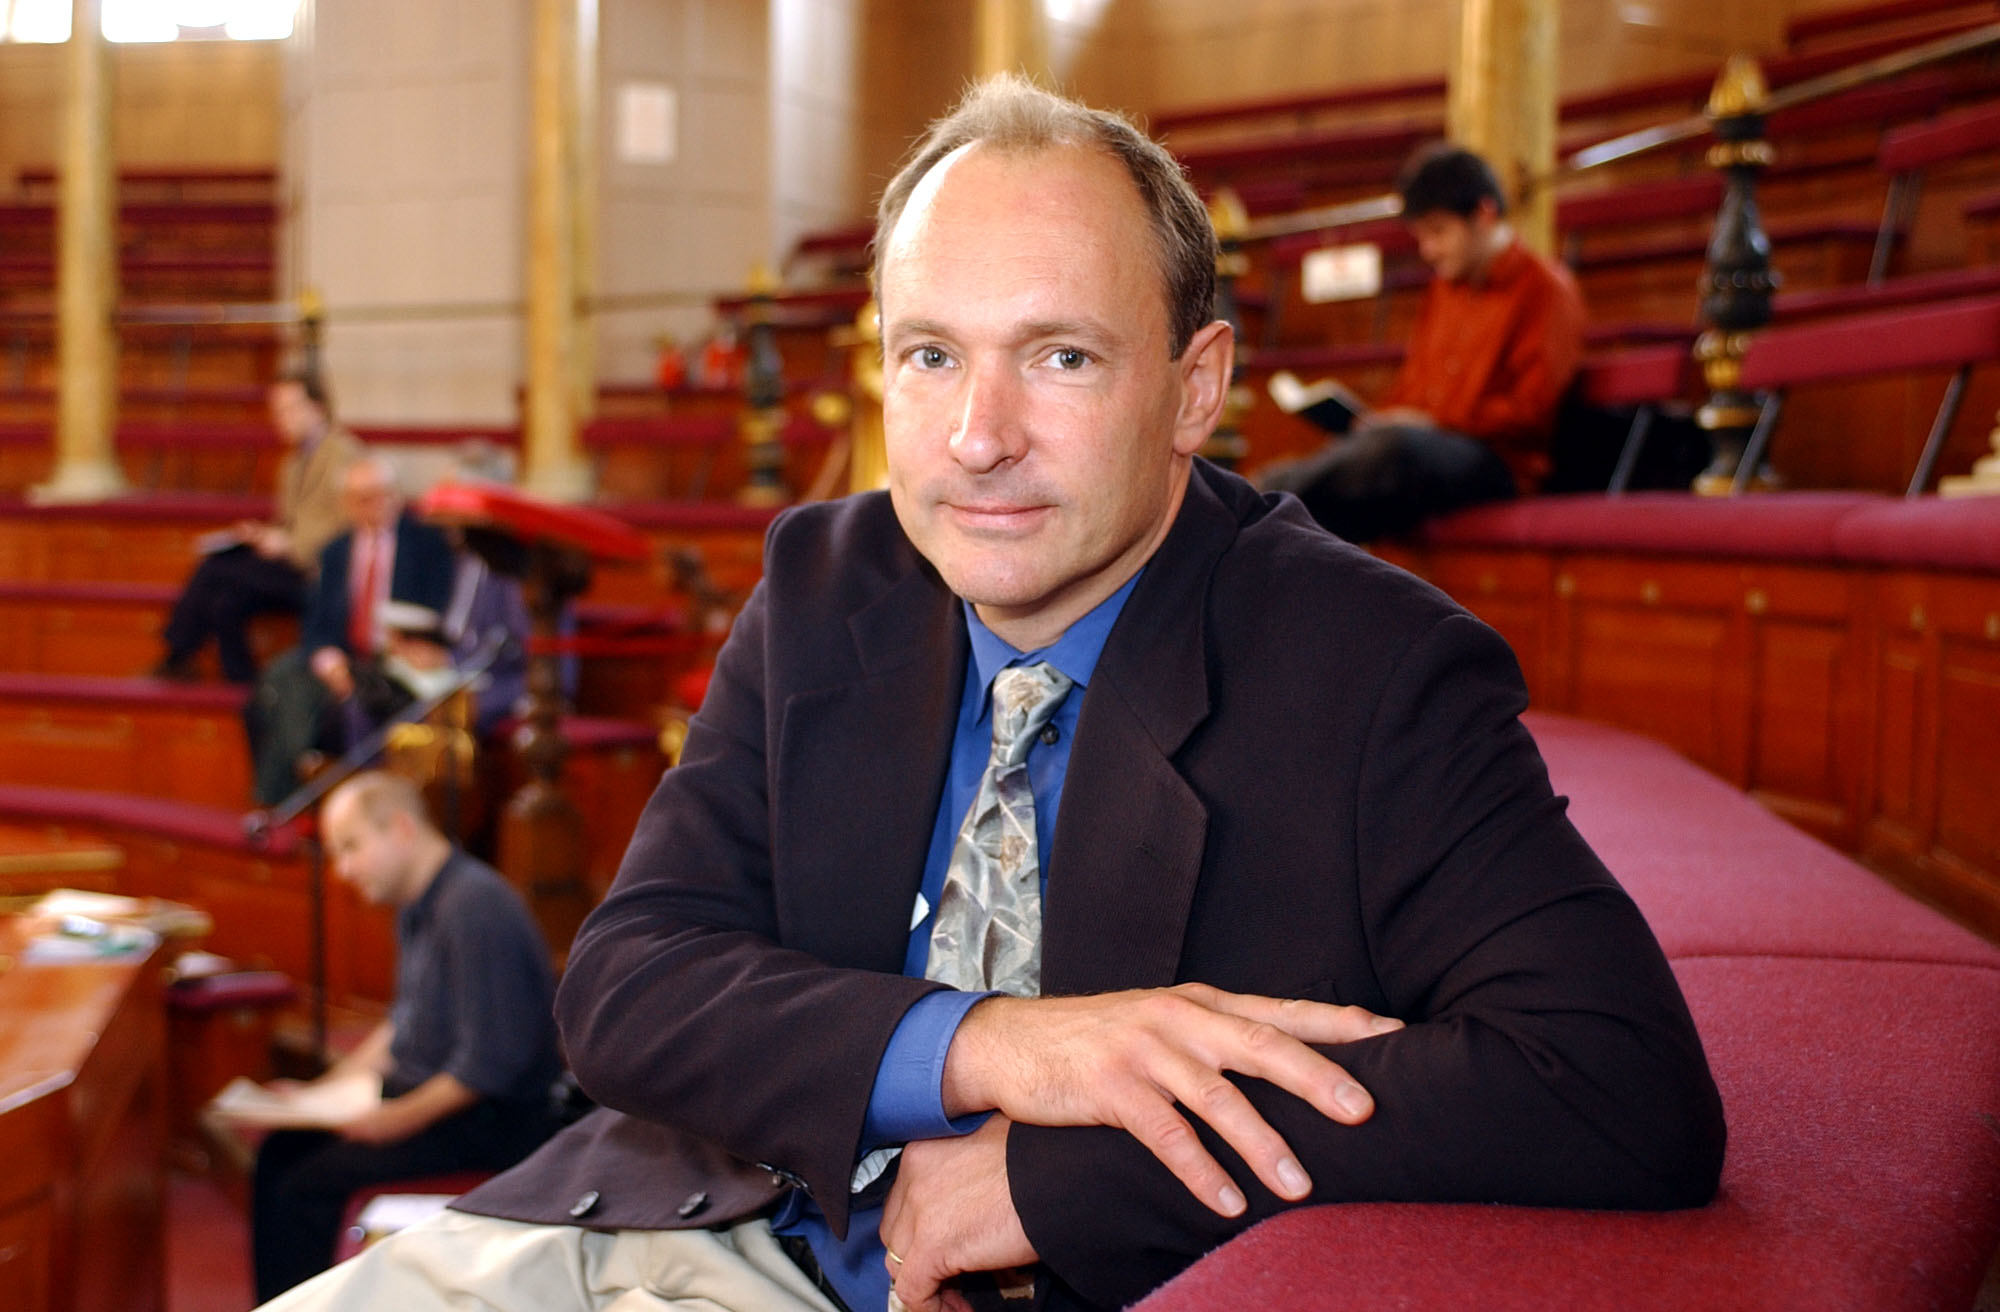 Tim Berners Lee World Wide Web Inventor Appointed